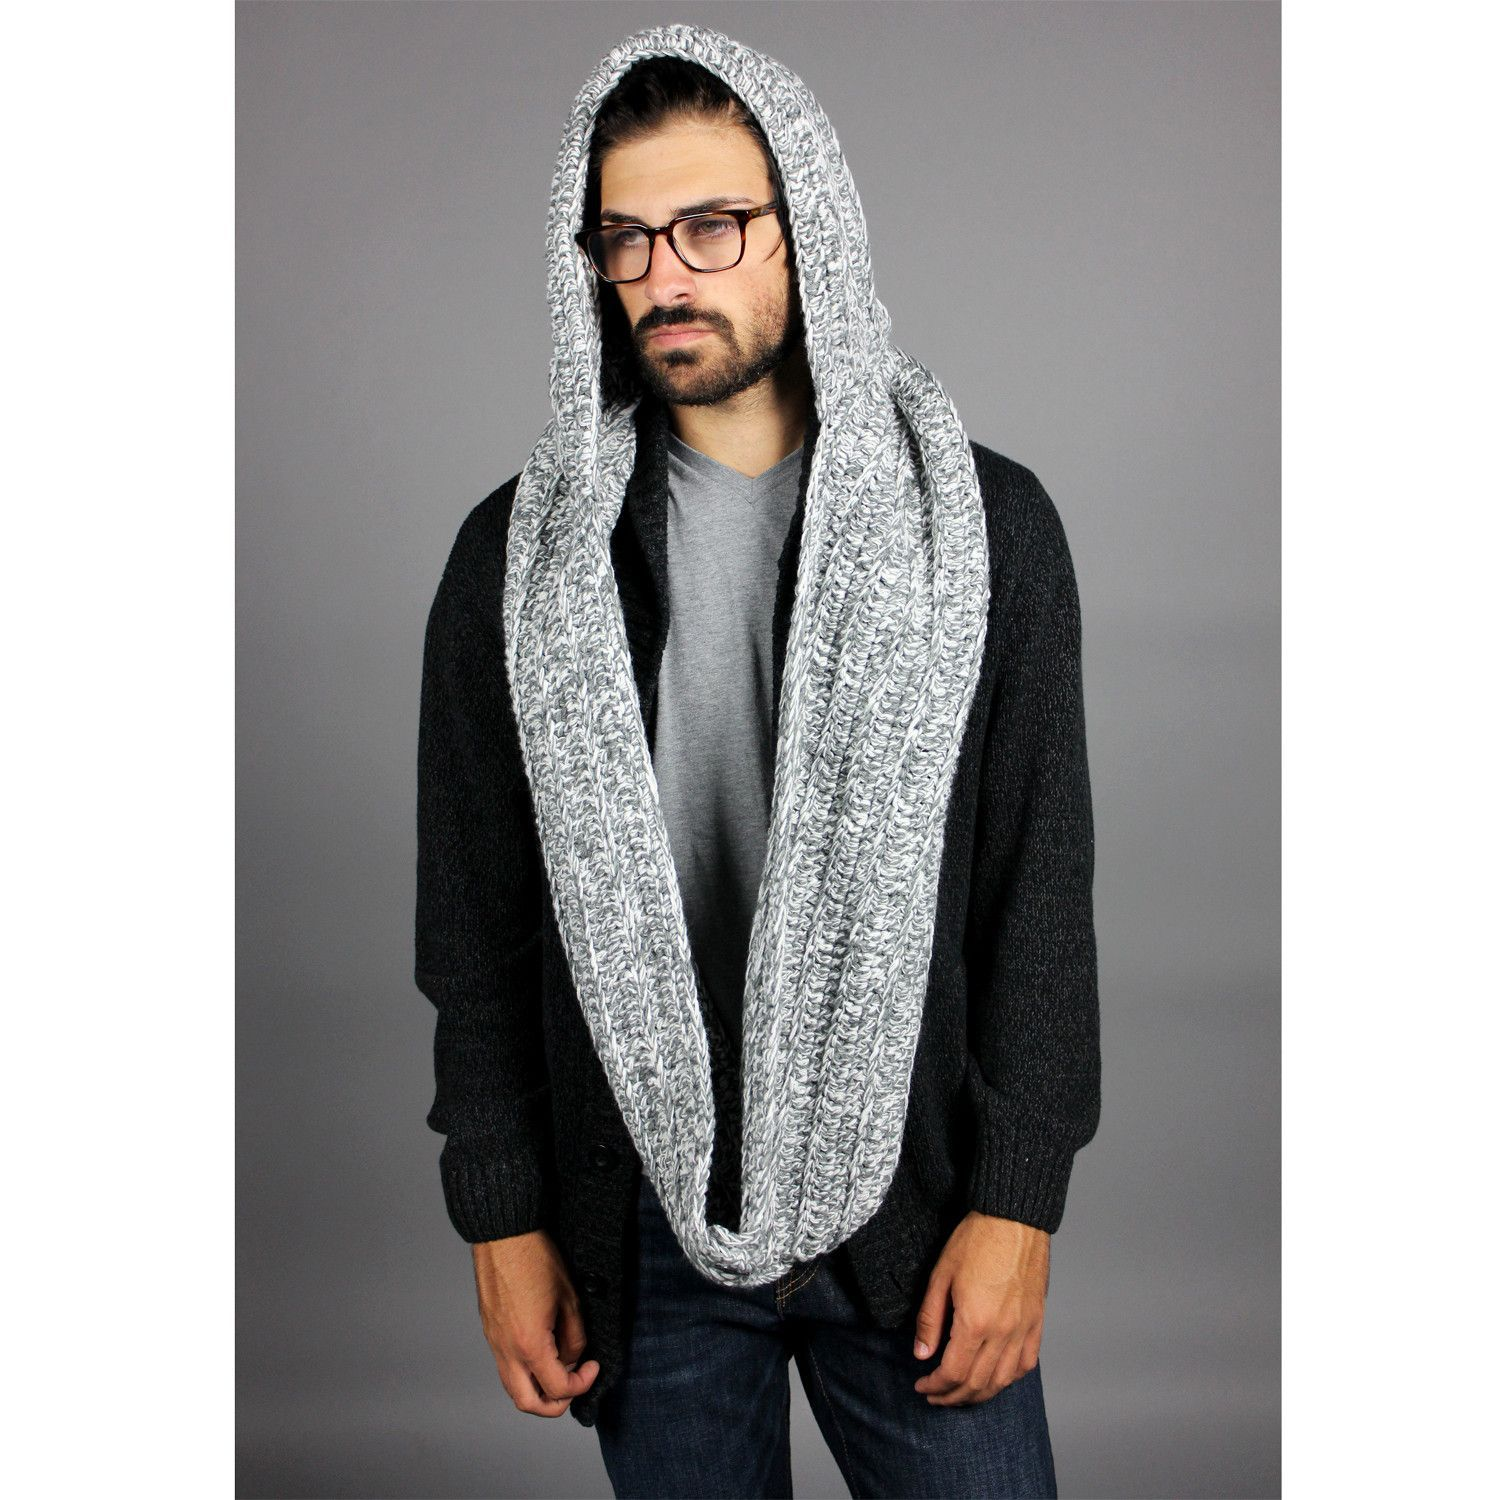 *The men's Chunky Fairisle Collection captures the classic MUK LUKS patterns we all know and love *Can be worn as a hooded scarf or as a scarf only *% acrylic *One size fits most See More Hats MUK LUKS Chunky Fairisle Funnel.